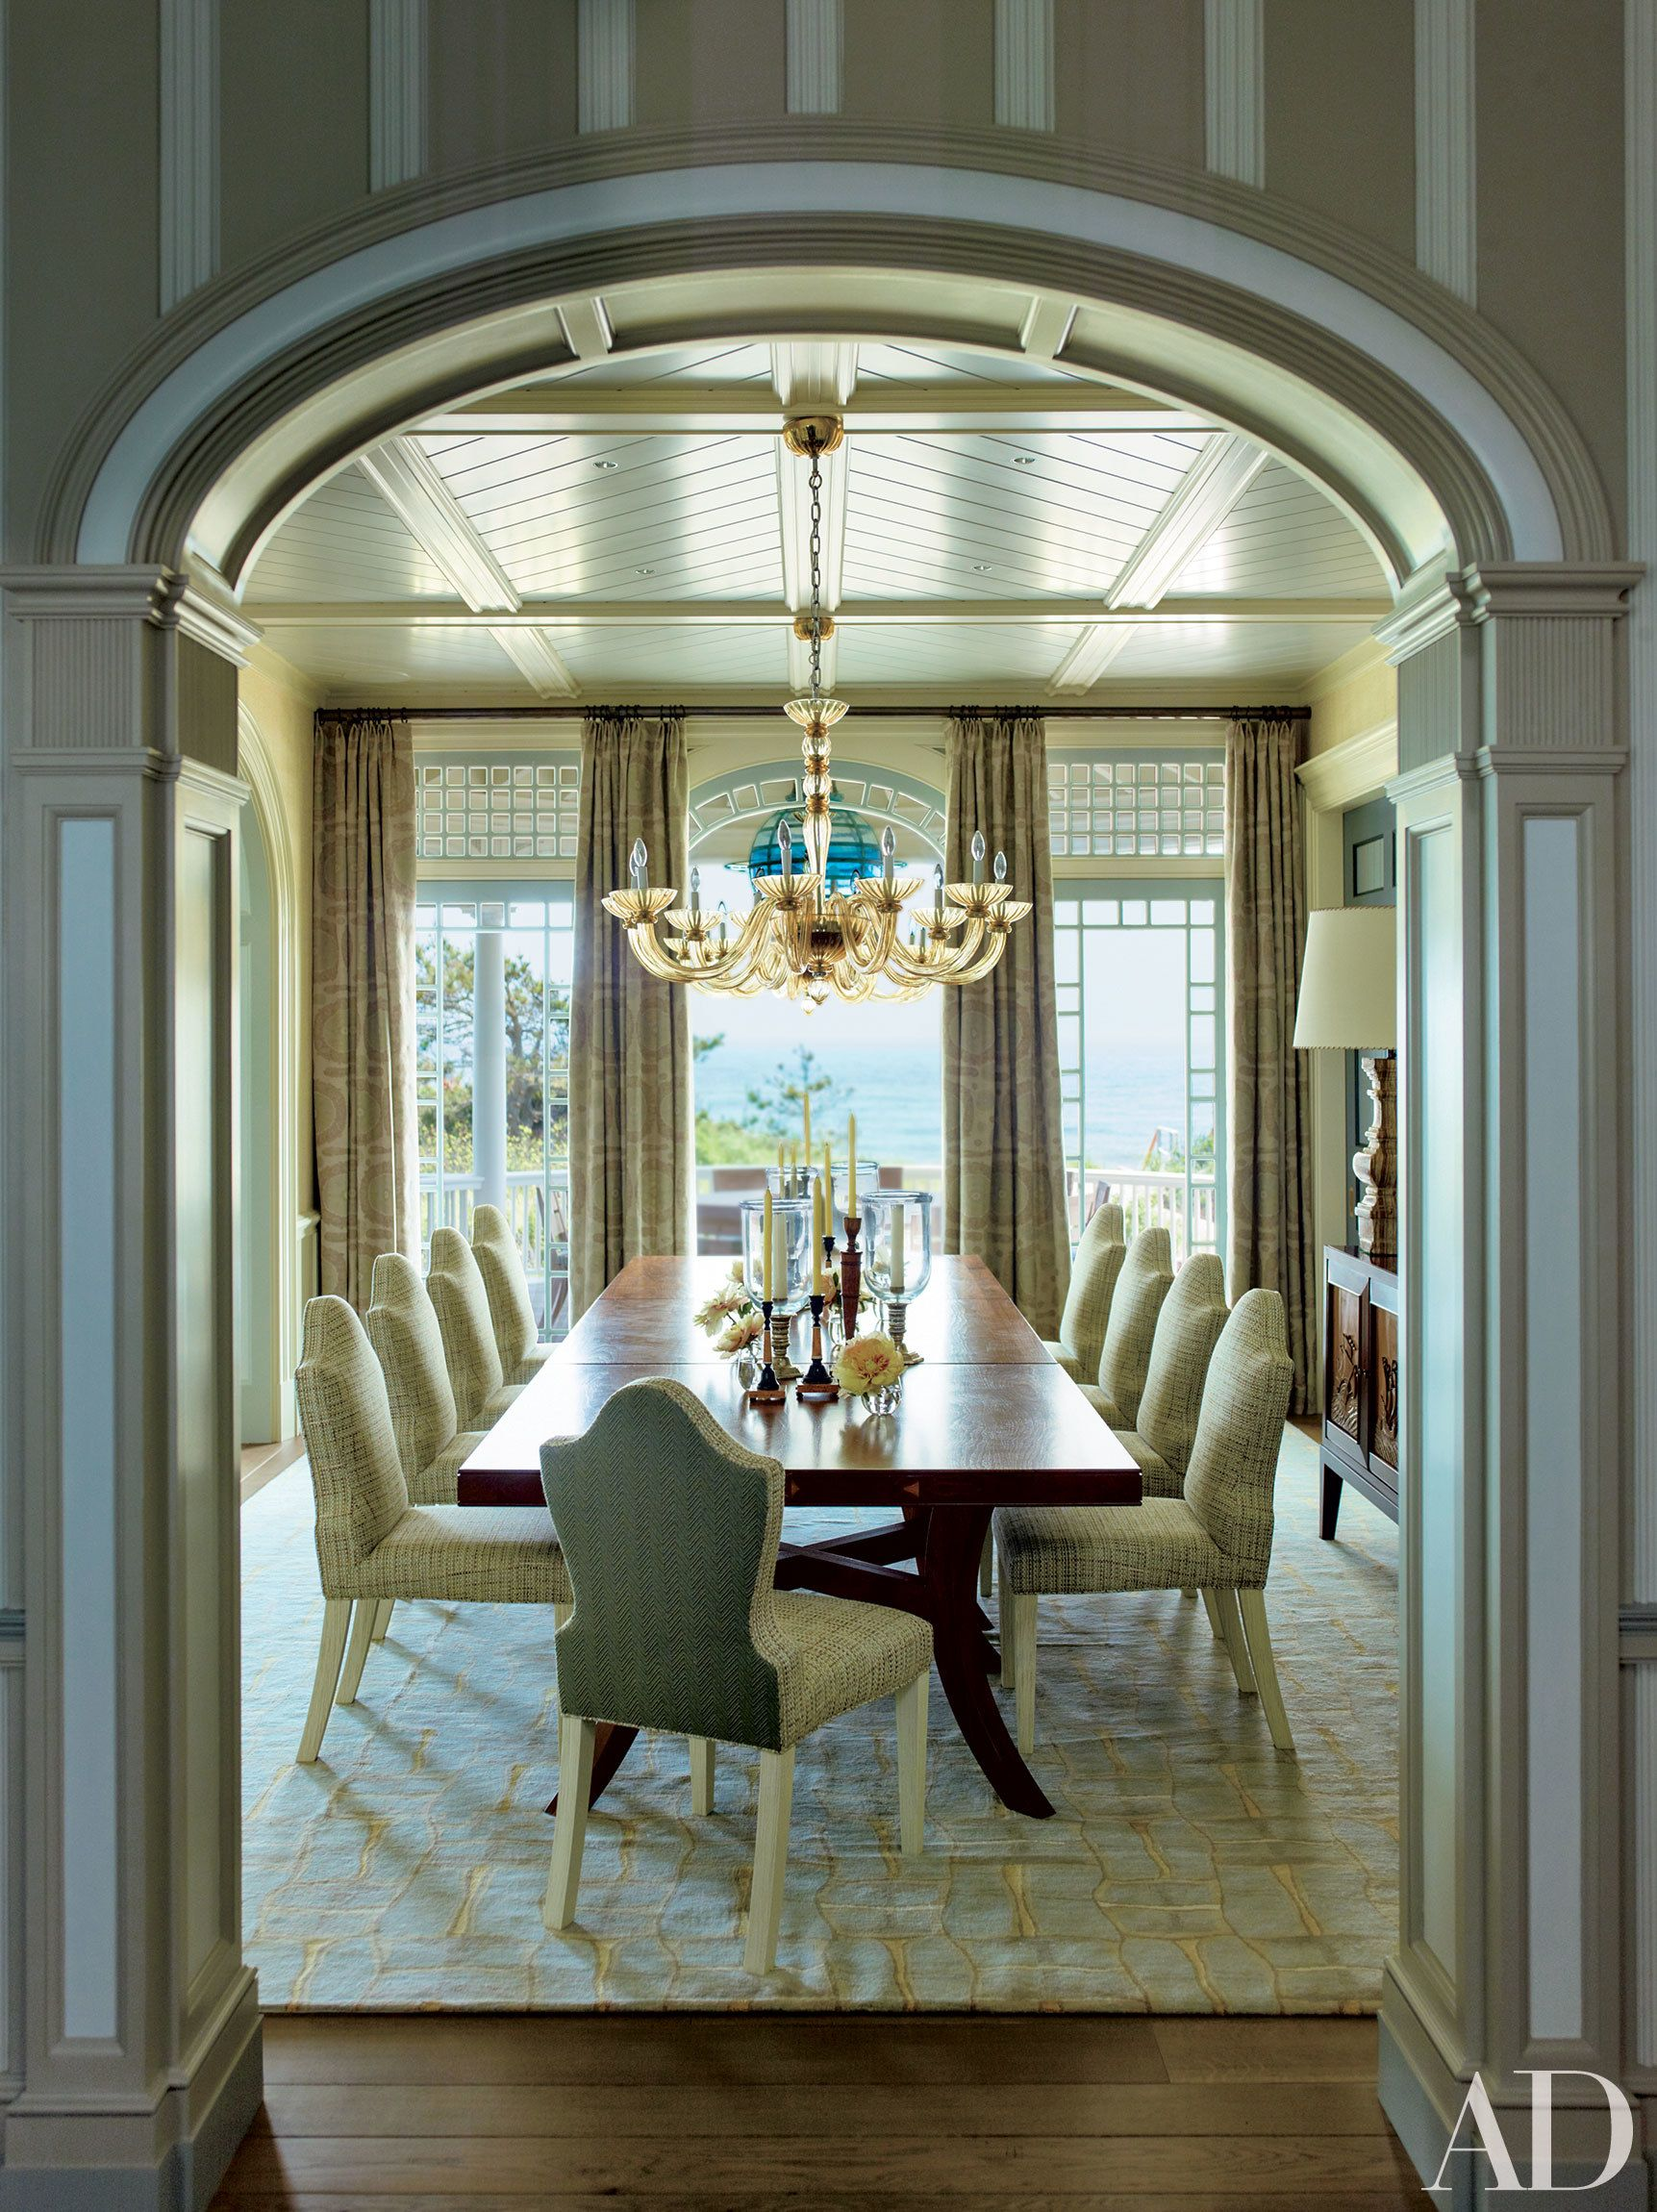 10 Incredible Designs by Robert A M  Stern Architects     10 Incredible Designs by Robert A M  Stern Architects   Architectural  Digest      Victorian Dining RoomsVictorian